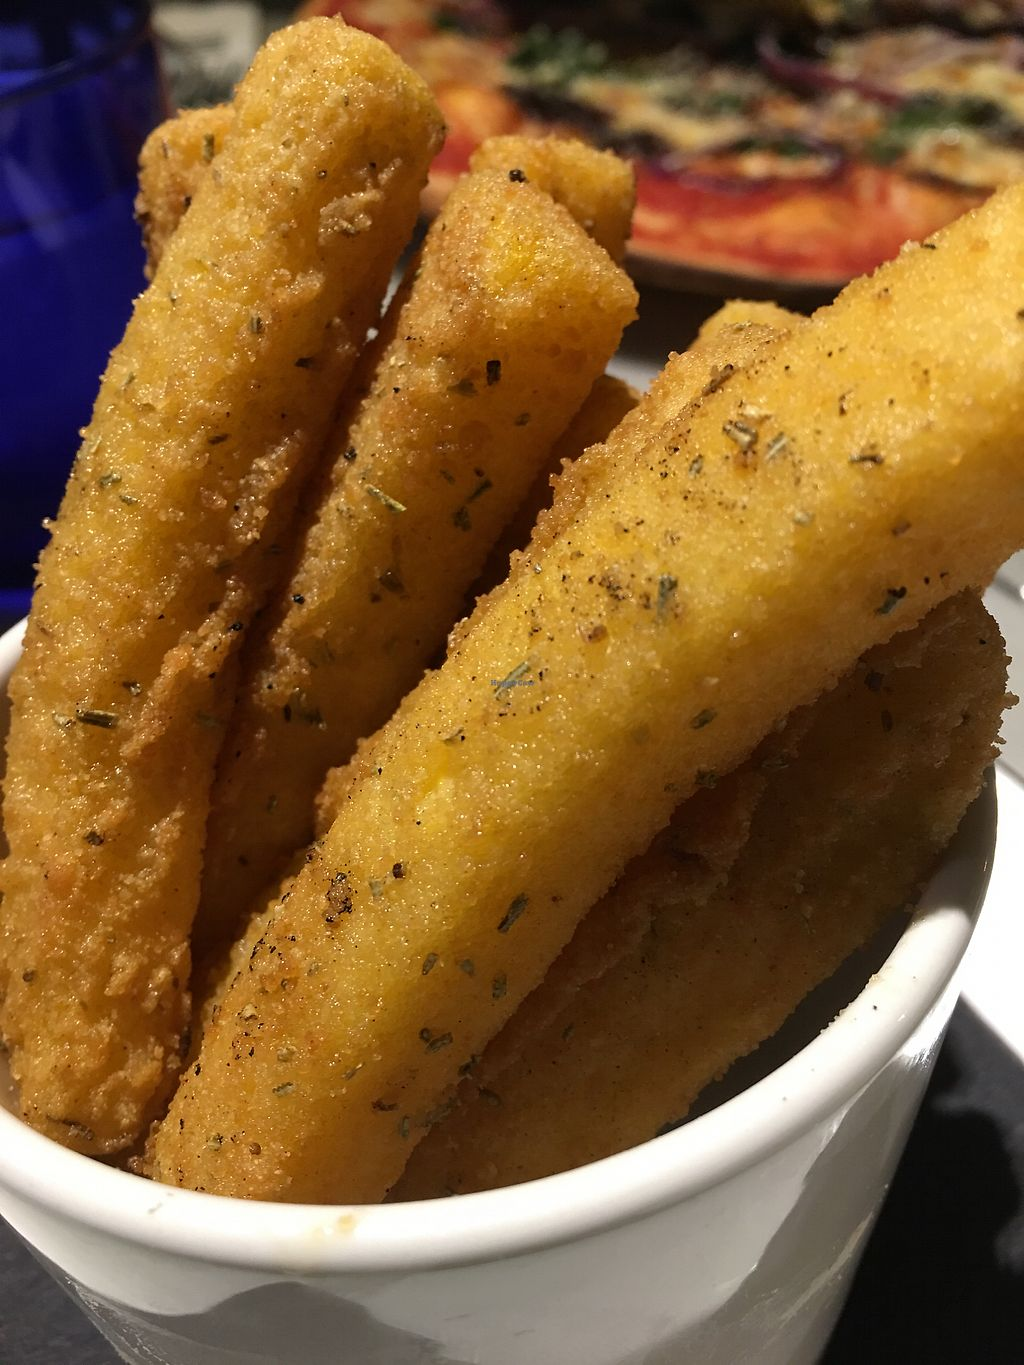 """Photo of Pizza Express  by <a href=""""/members/profile/hack_man"""">hack_man</a> <br/>Polenta fries  <br/> April 22, 2018  - <a href='/contact/abuse/image/98873/389227'>Report</a>"""